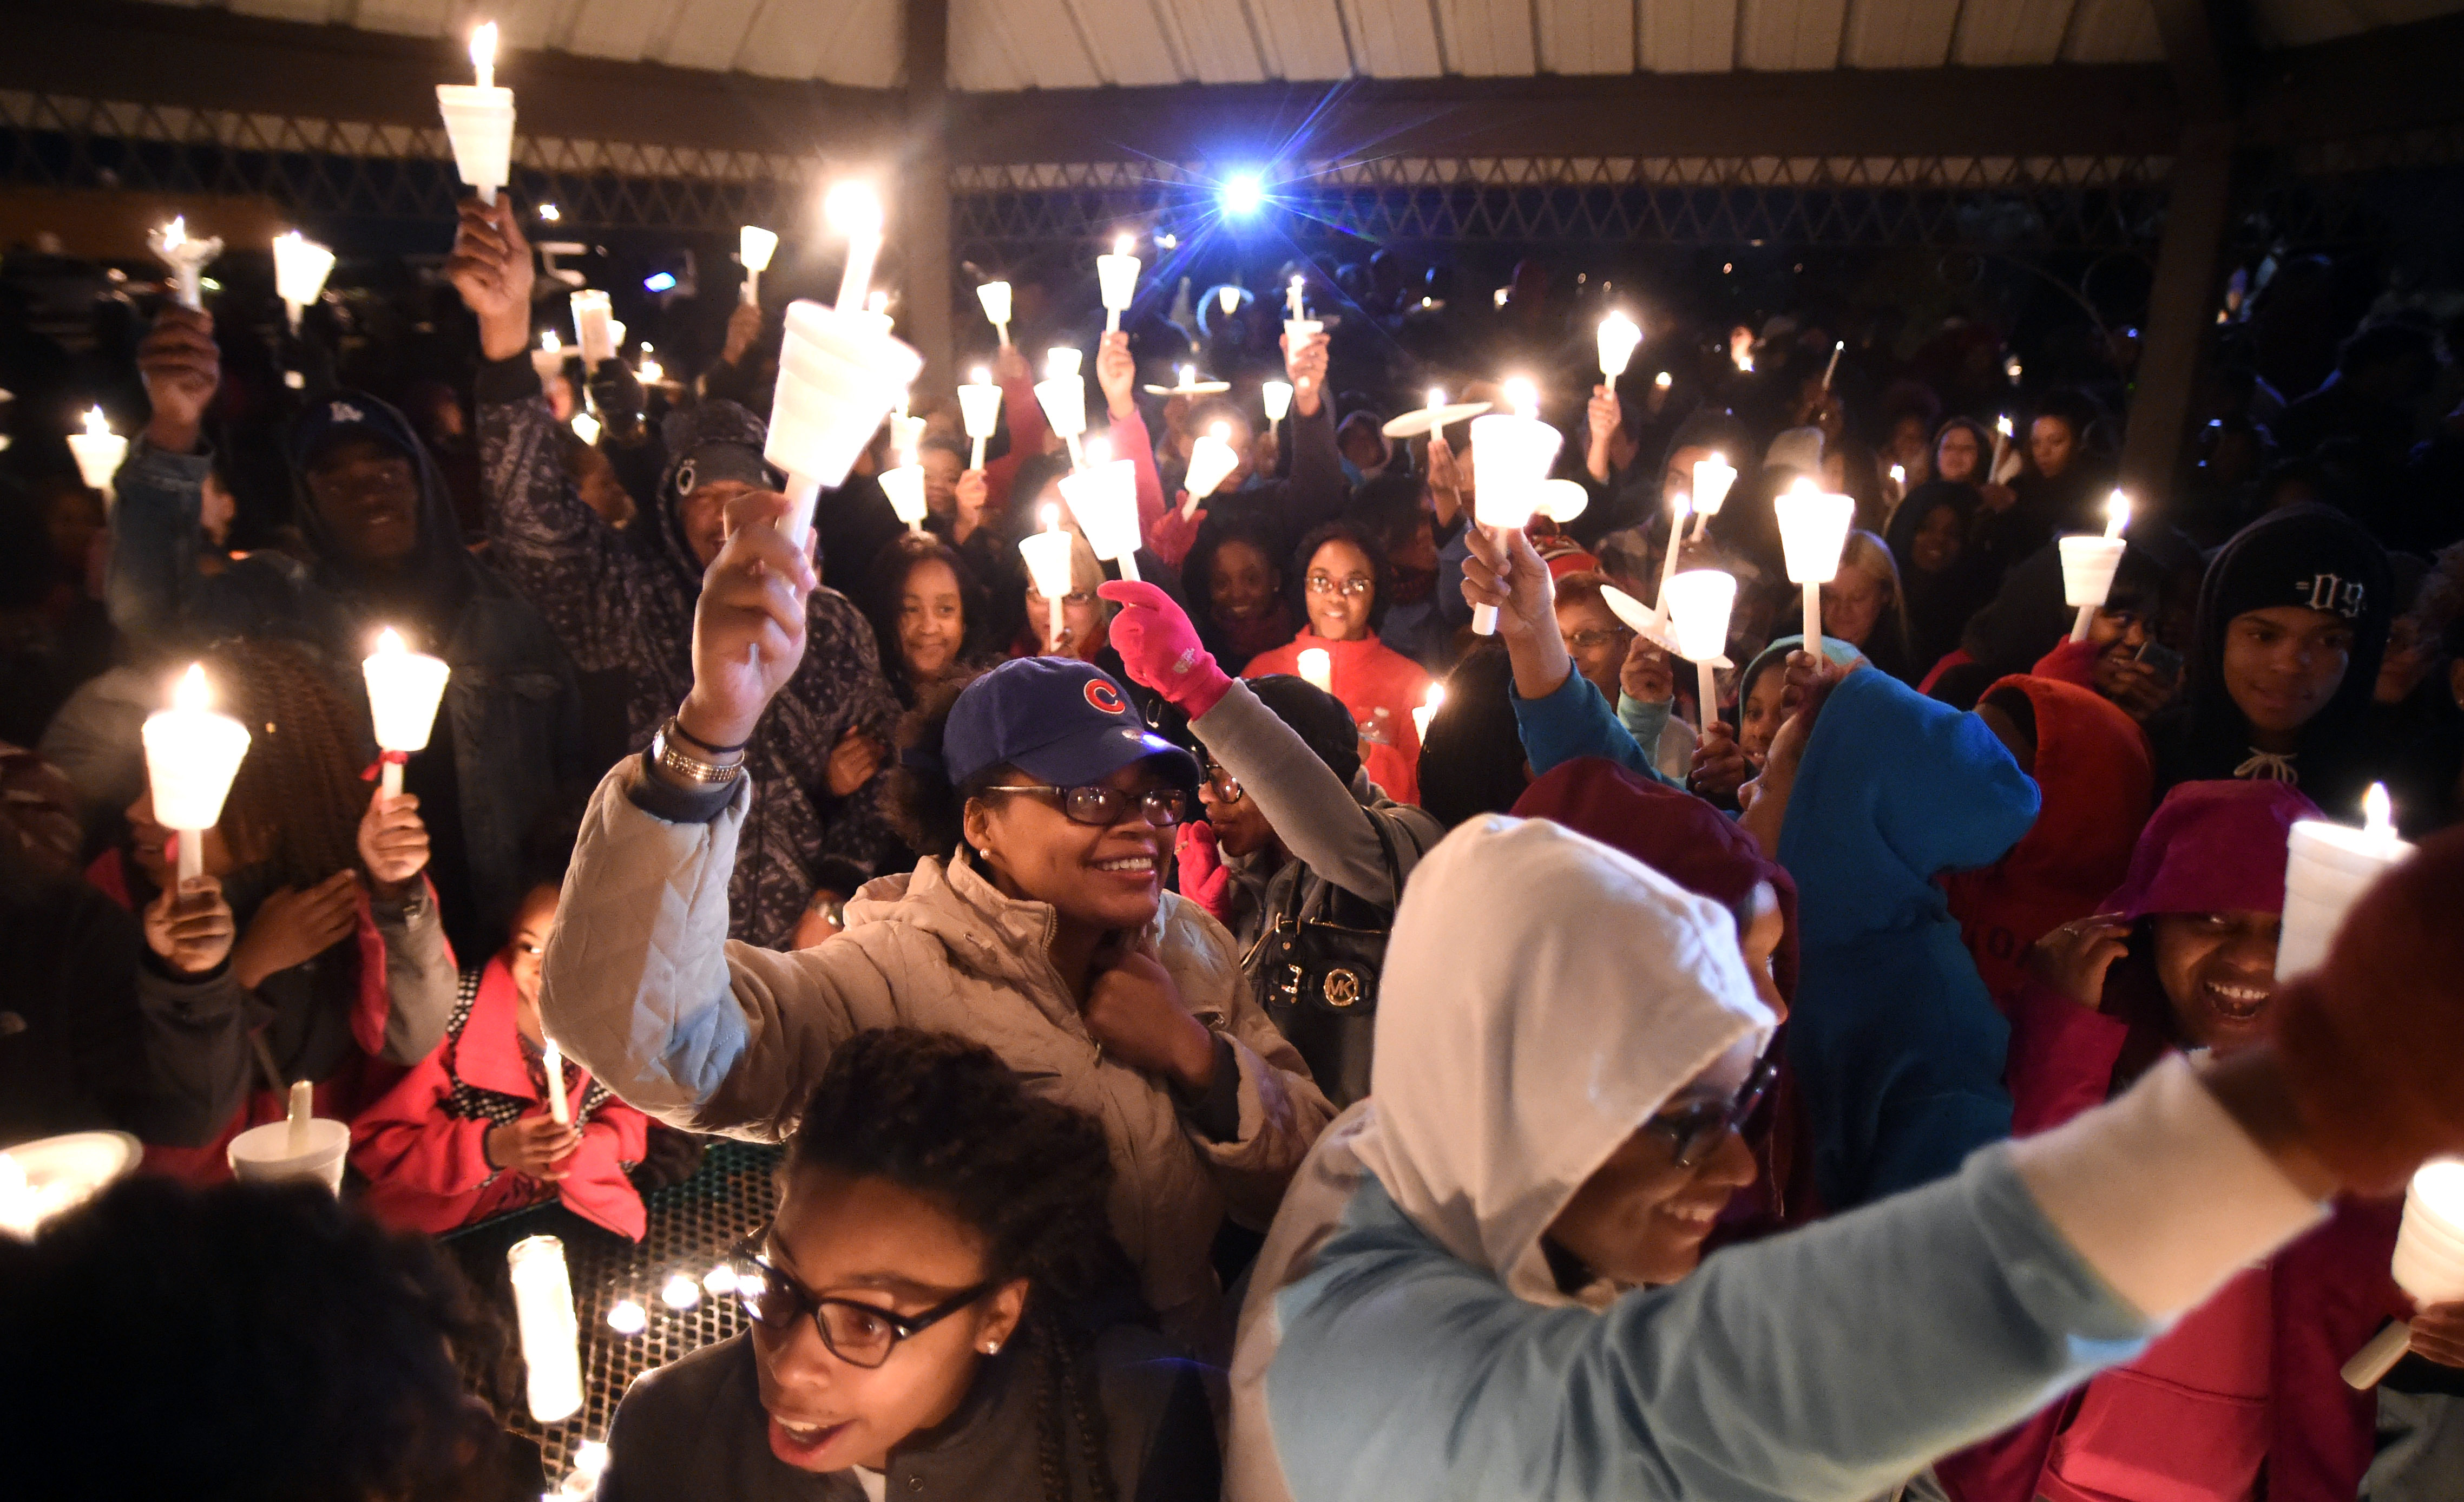 Attendees raise candles to celebrate the life of Zaevion Dobson at Sam E. Hill Park in Knoxville, Tenn., on Dec. 18, 2015.